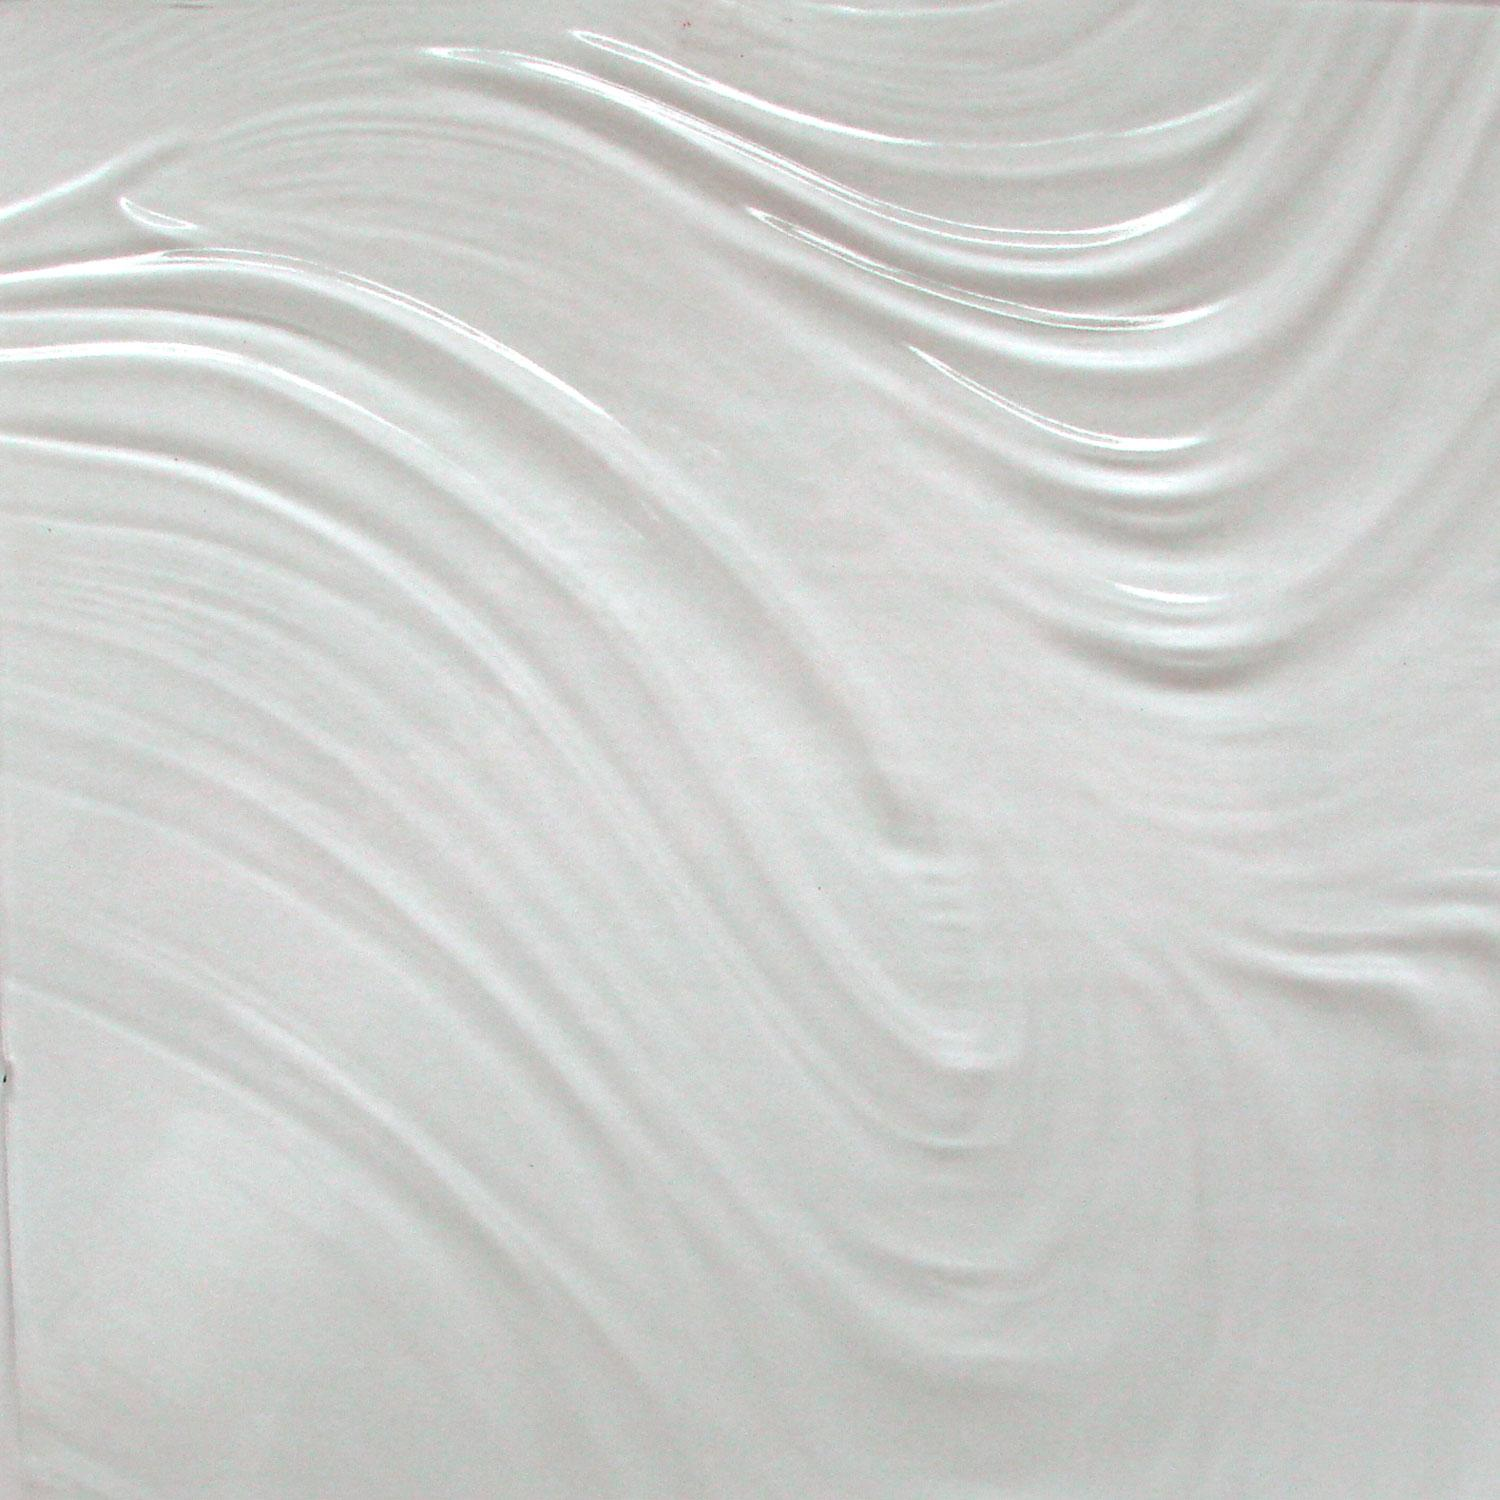 Clear nouveau reamy clear textured glass delphi glass for Clear glass texture